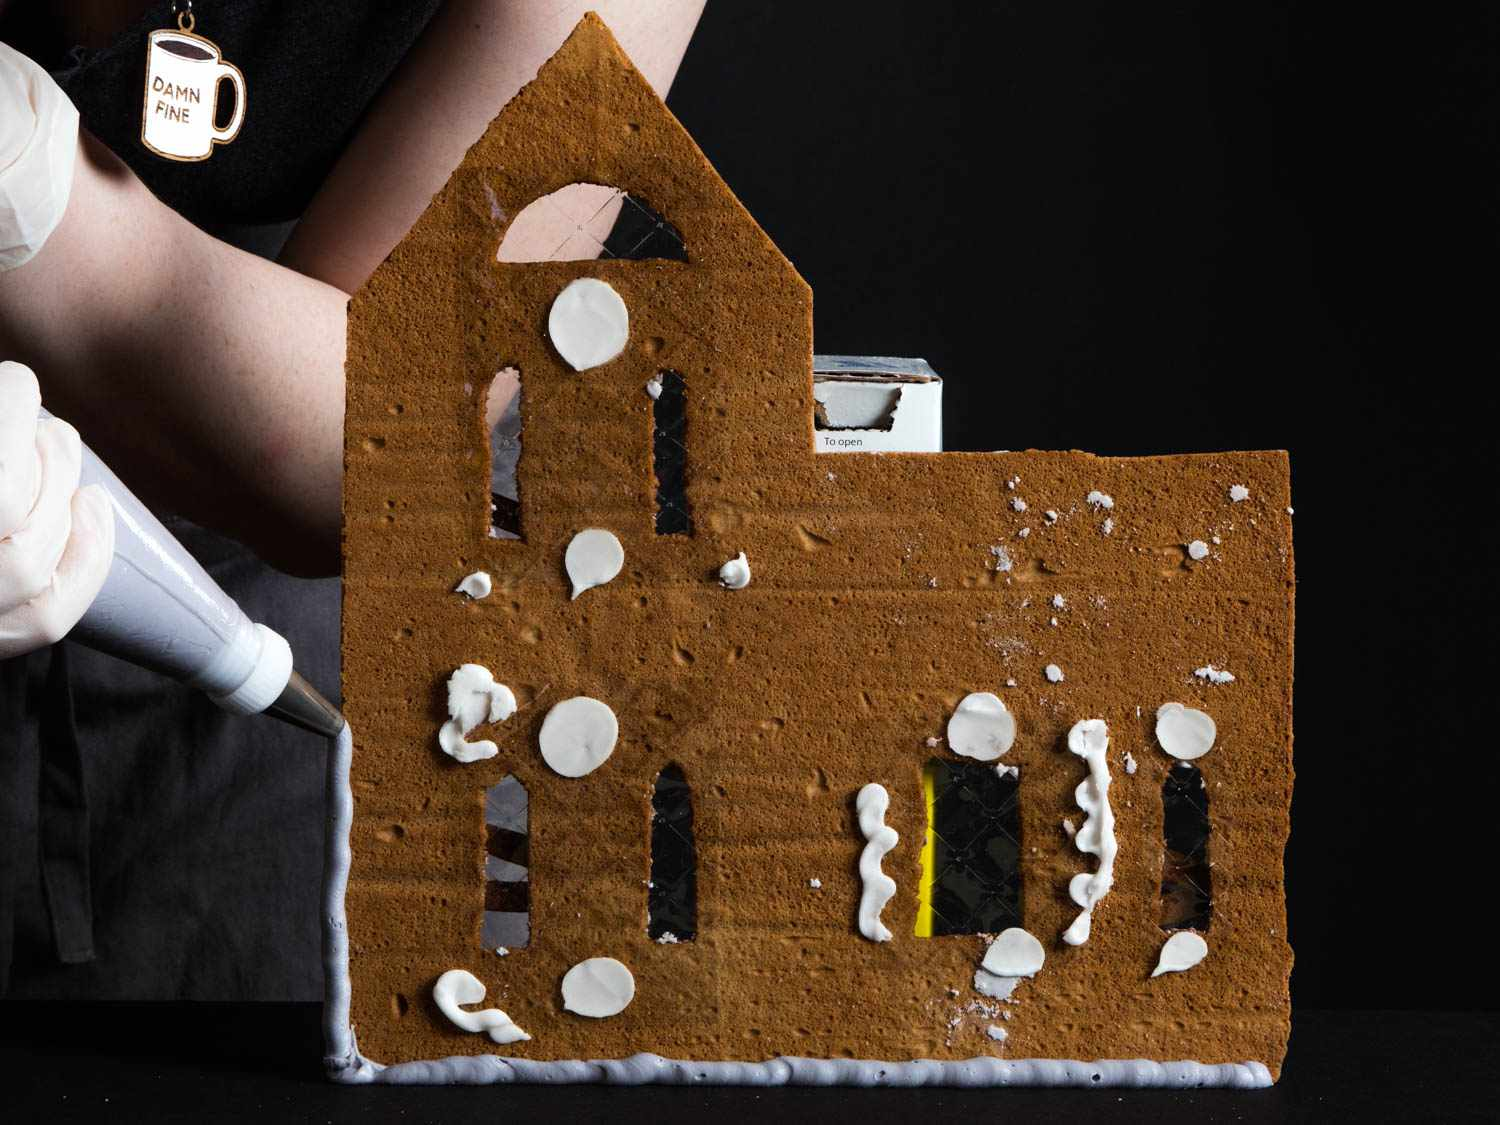 Piping lines and dollops of royal icing onto a wall of gingerbread to begin assembling the house